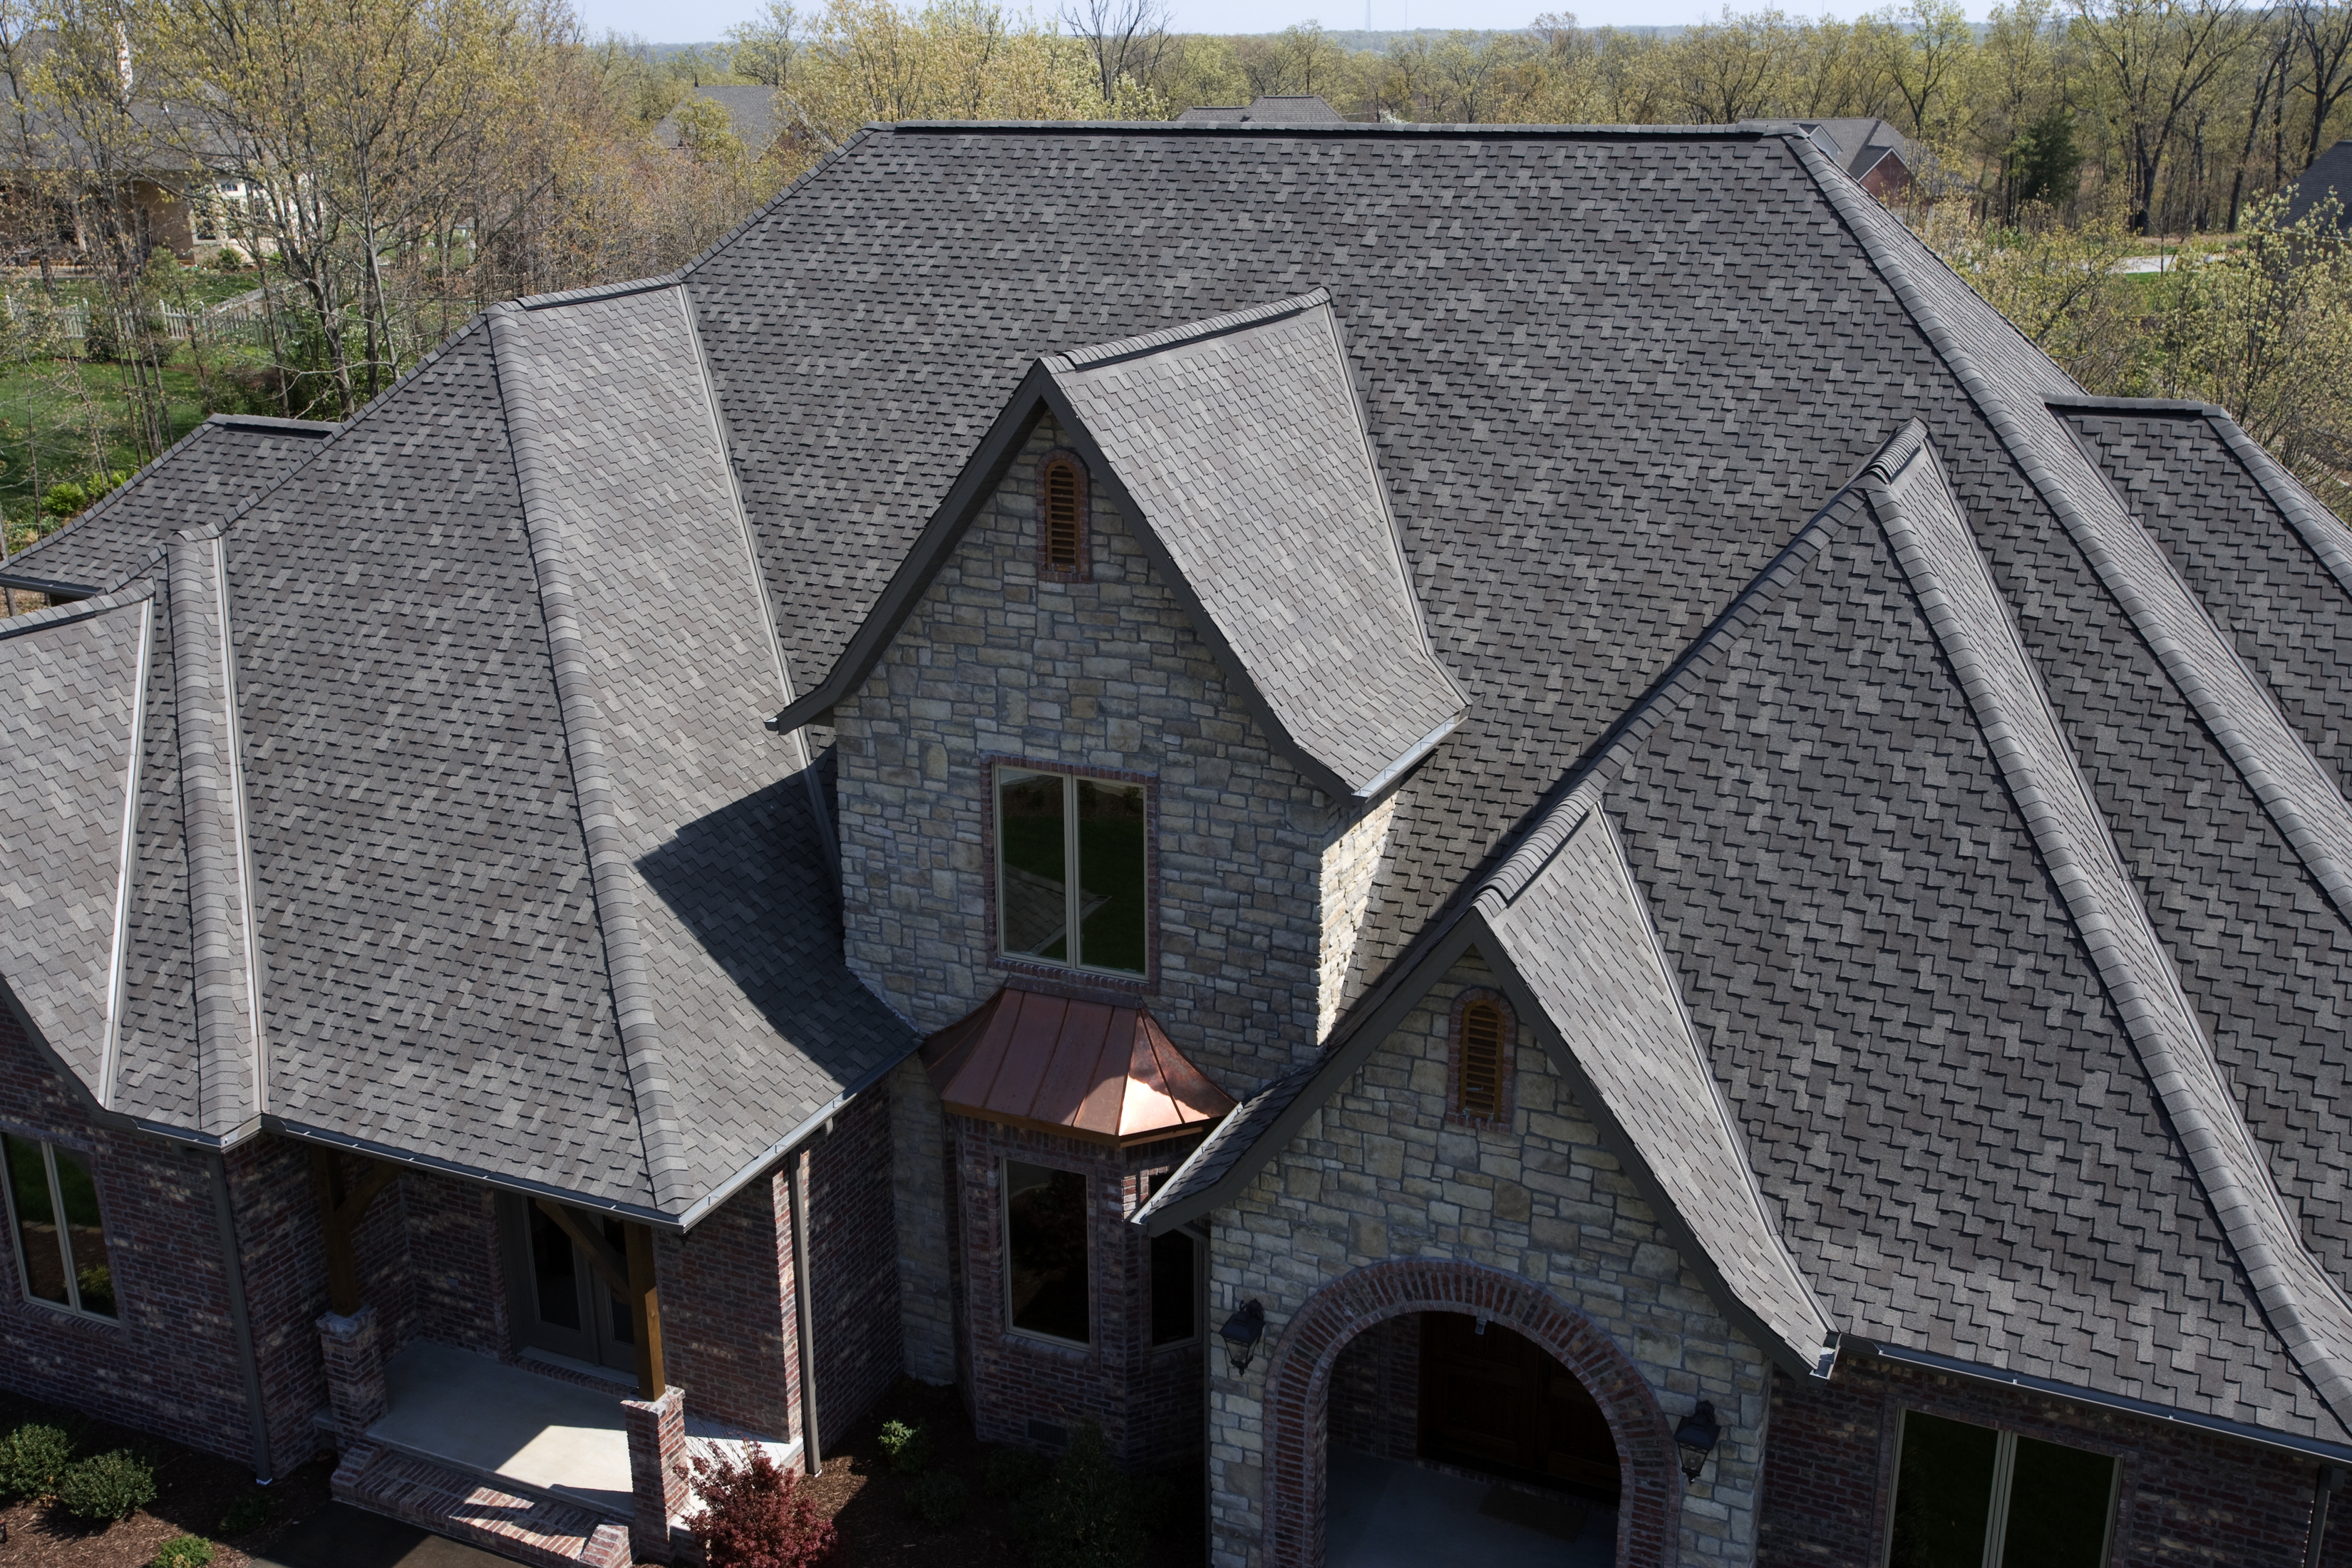 Beautiful Homes Start with Heritage Shingles: Heritage Roofing Shingles | Heritage Shingles | Wood Shims Lowes